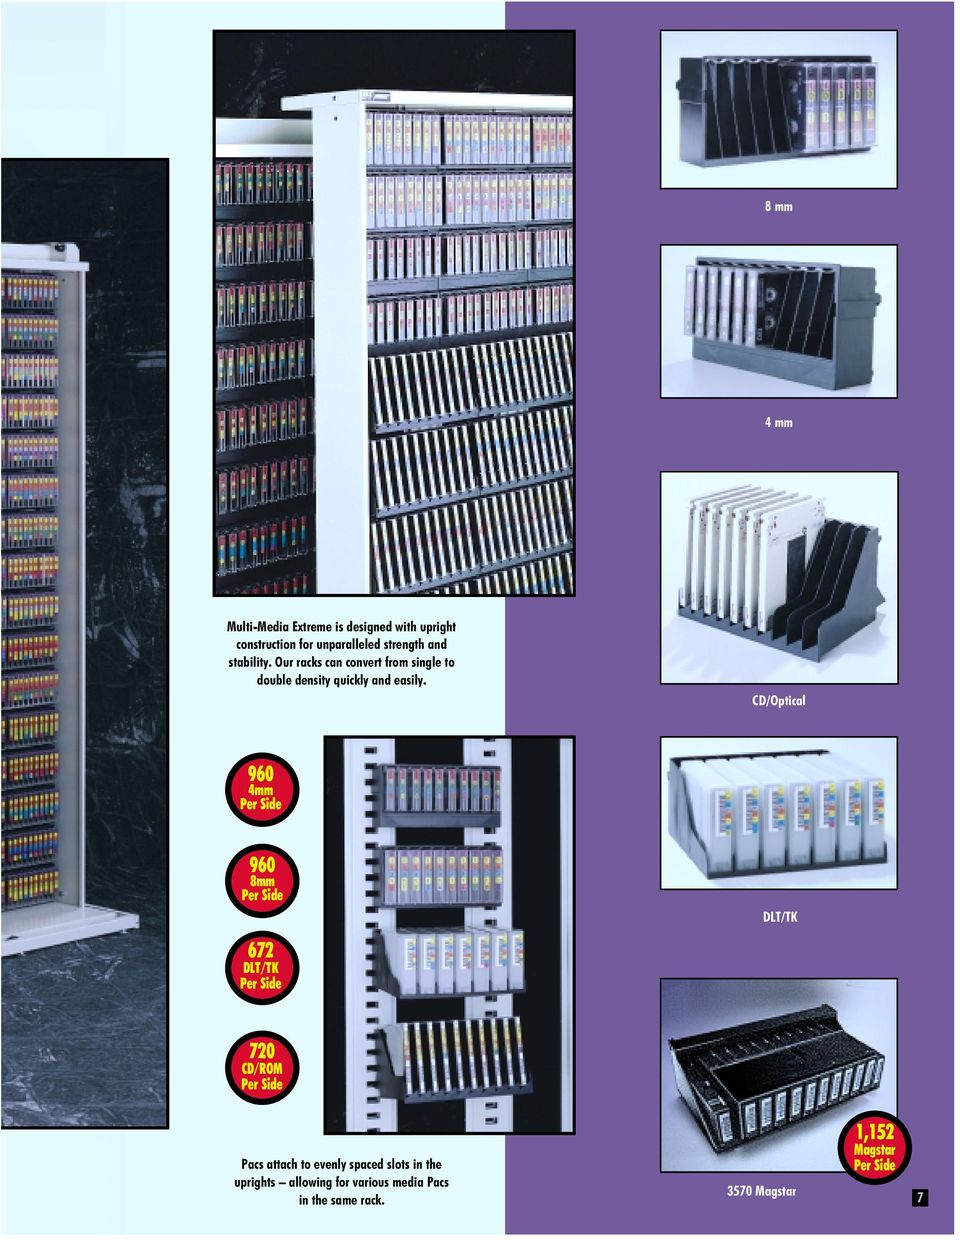 Our racks can convert from single to double density quickly and easily.